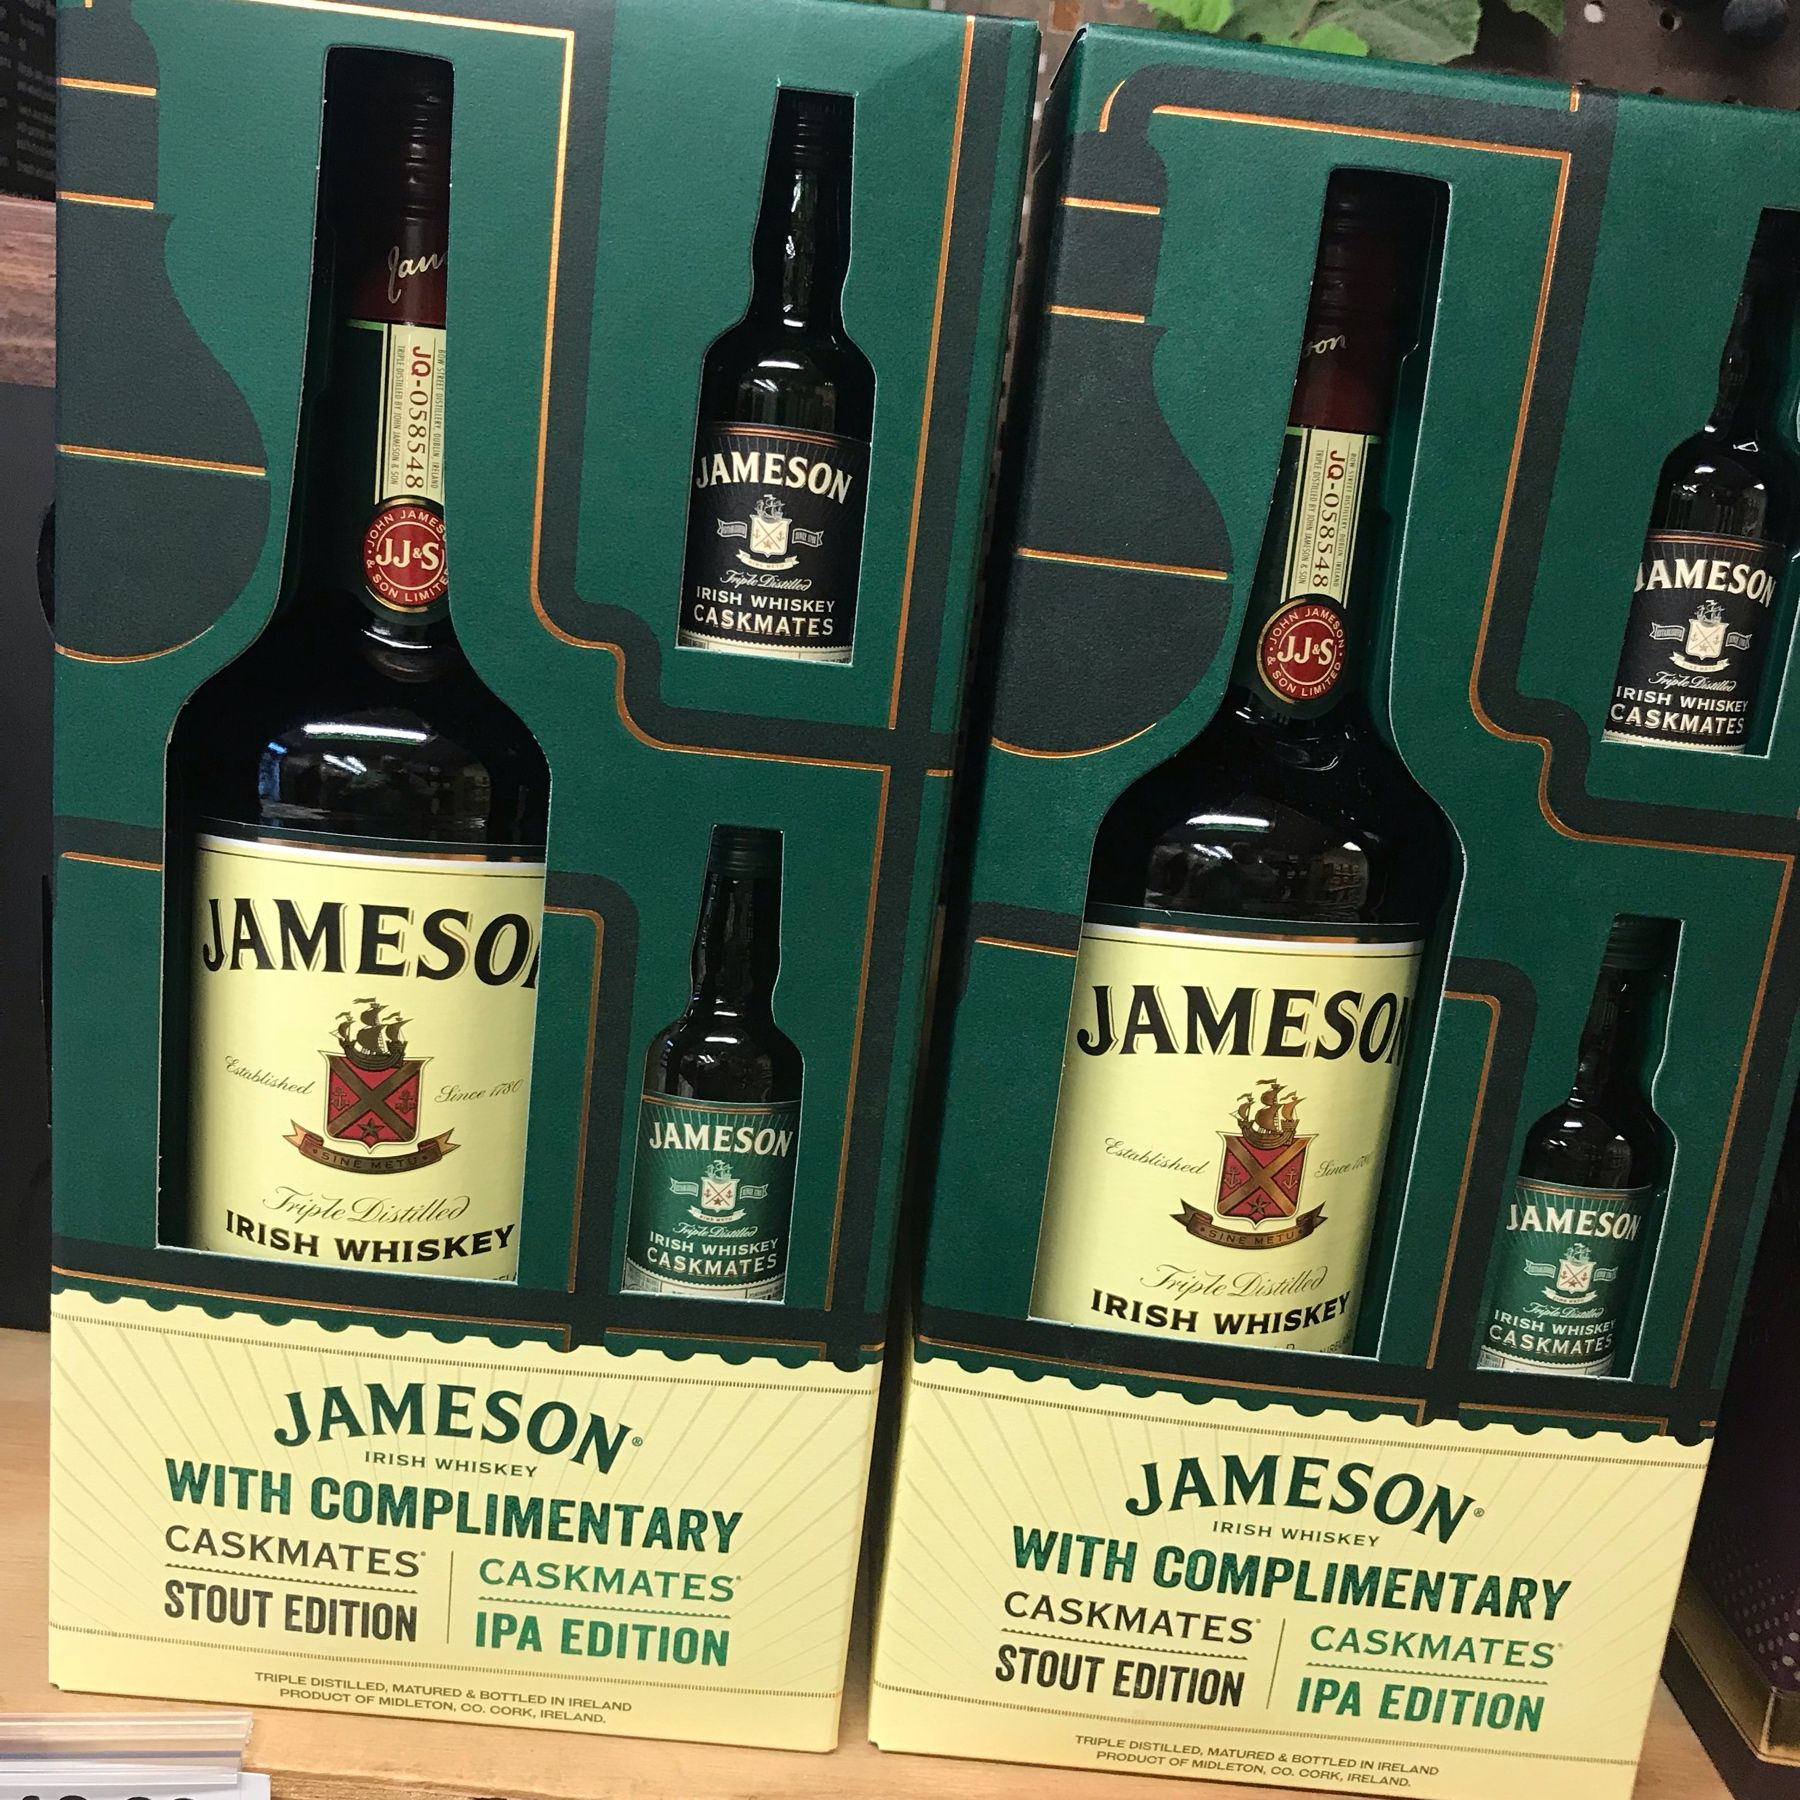 If you have a Jameson lover on your holiday list, this gift set is a